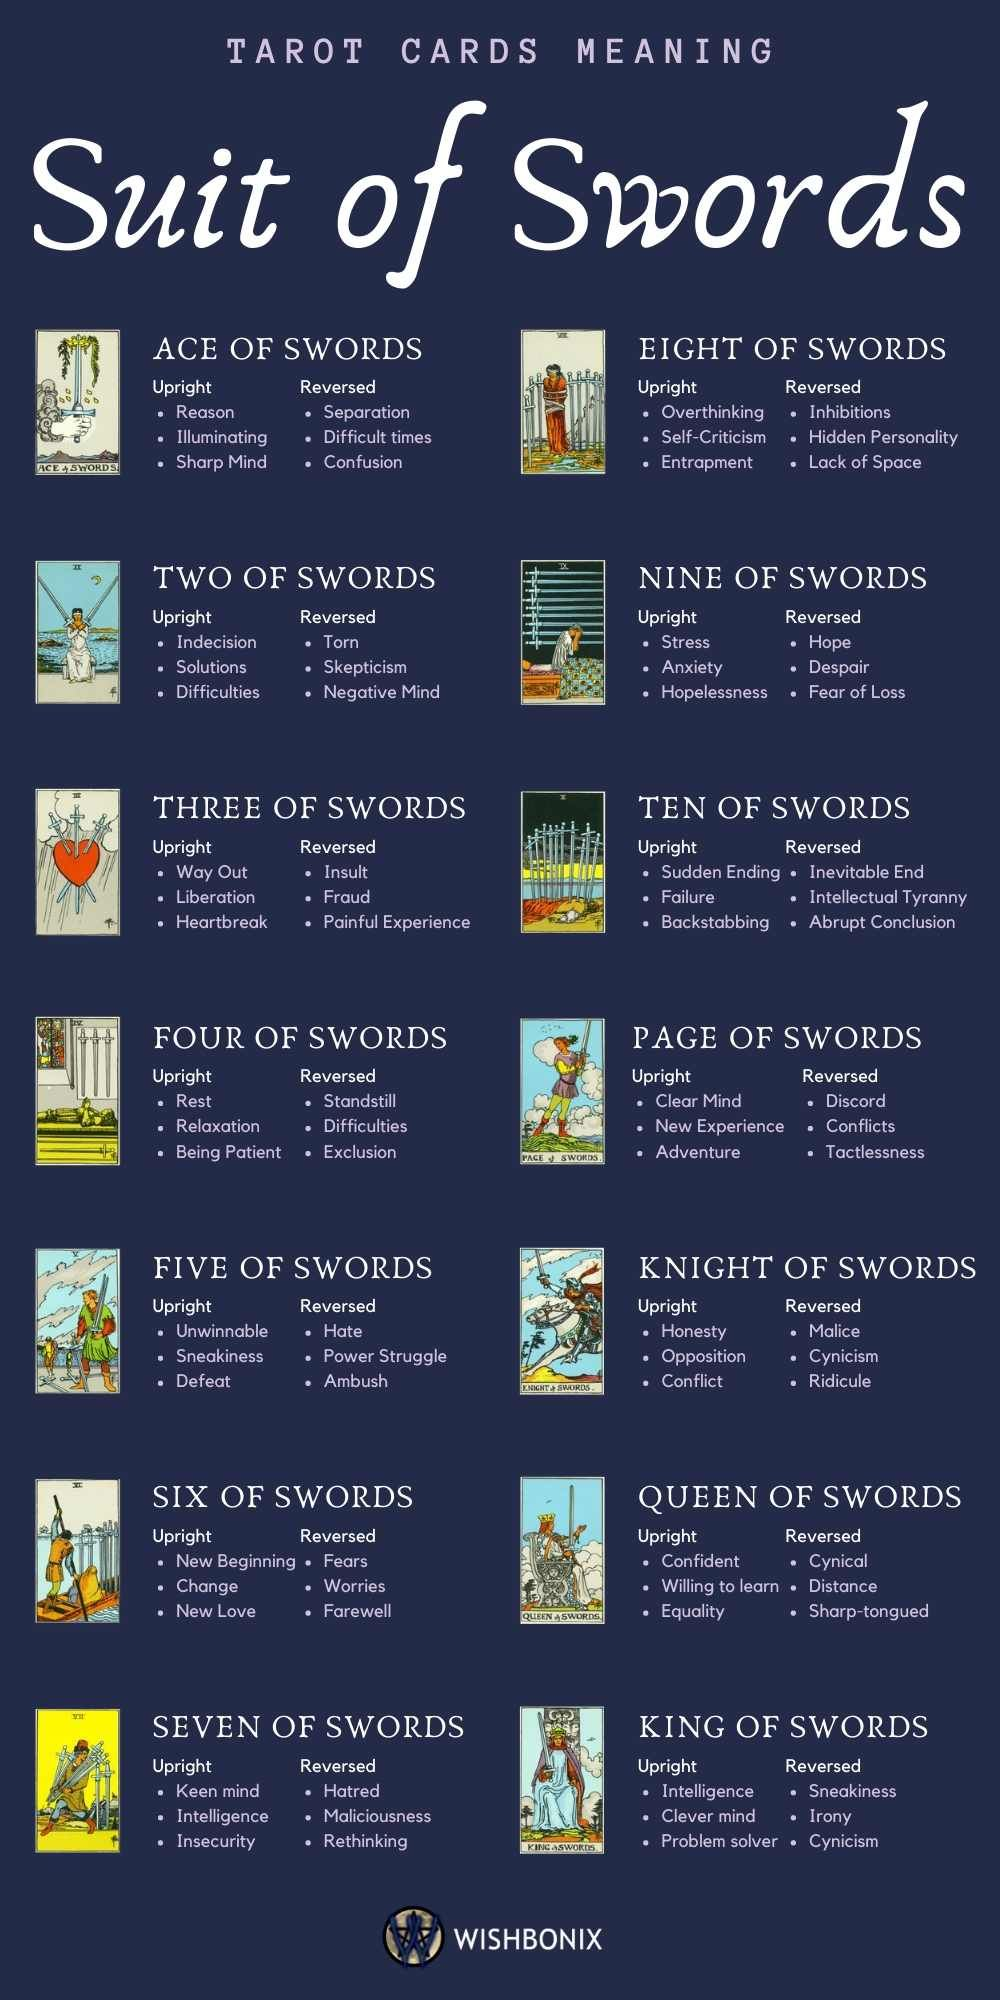 The Suit of Swords - Tarot Cards Meaning